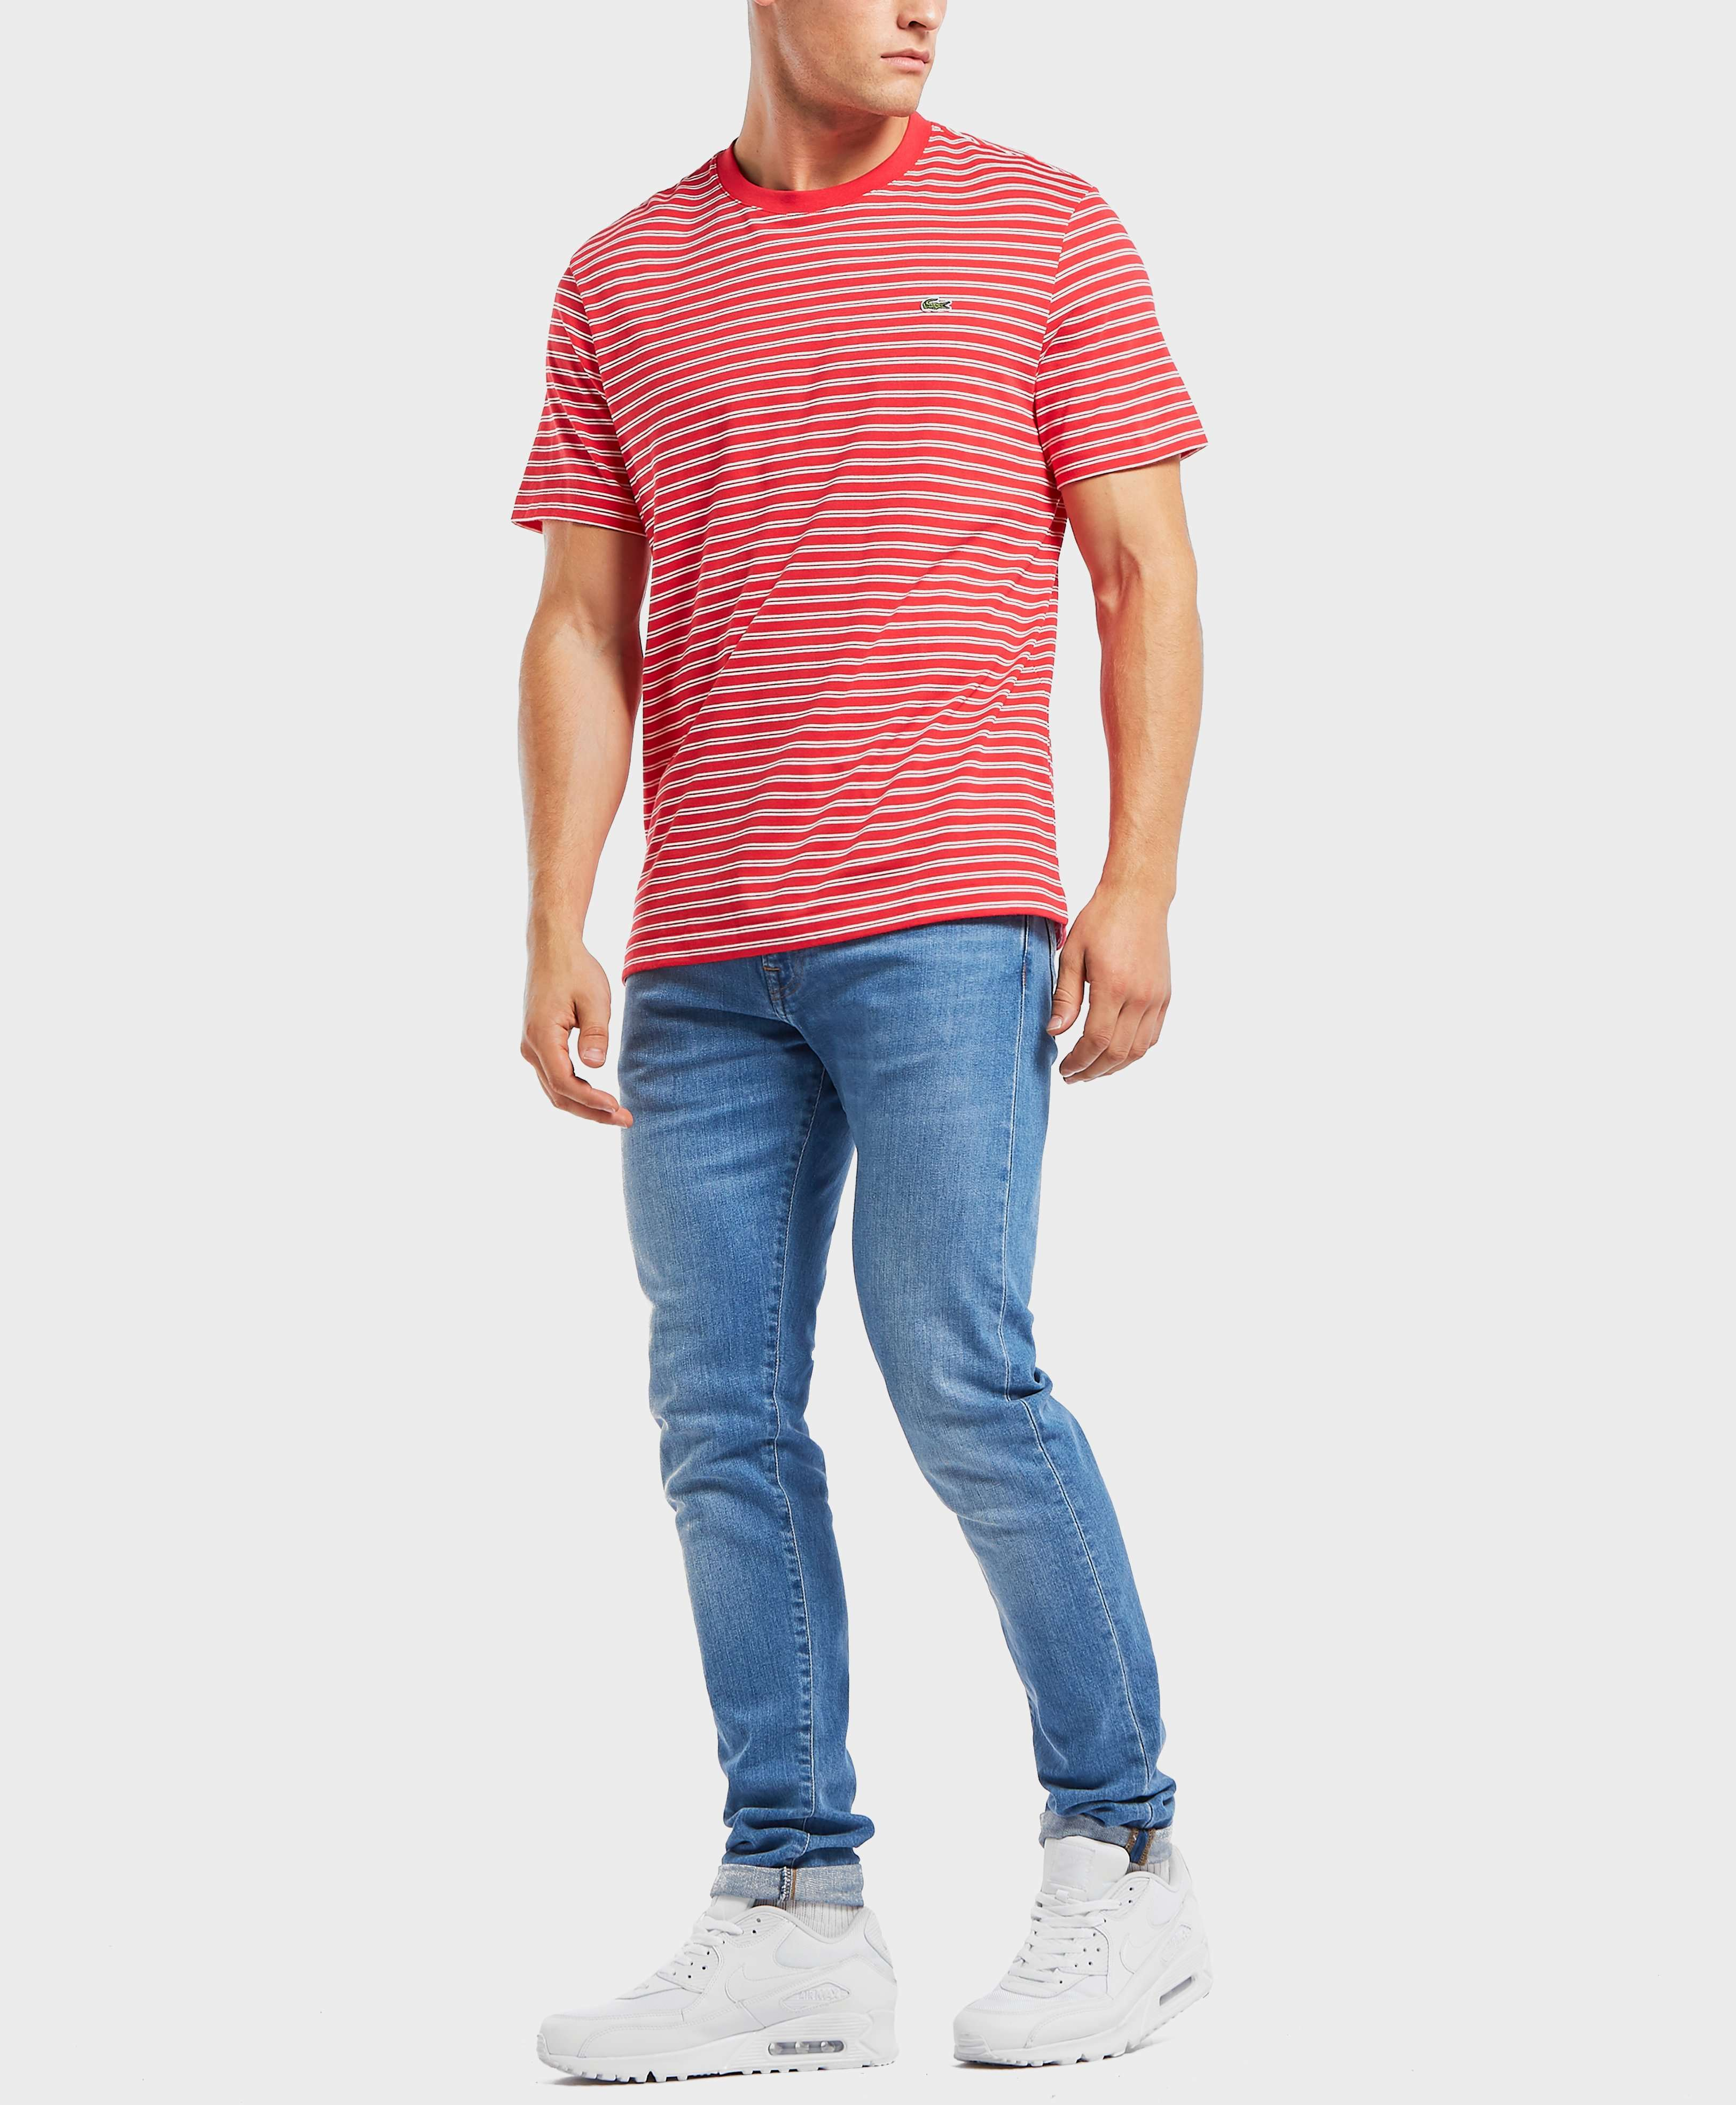 Lacoste Stripe Jersey Short Sleeve T-Shirt